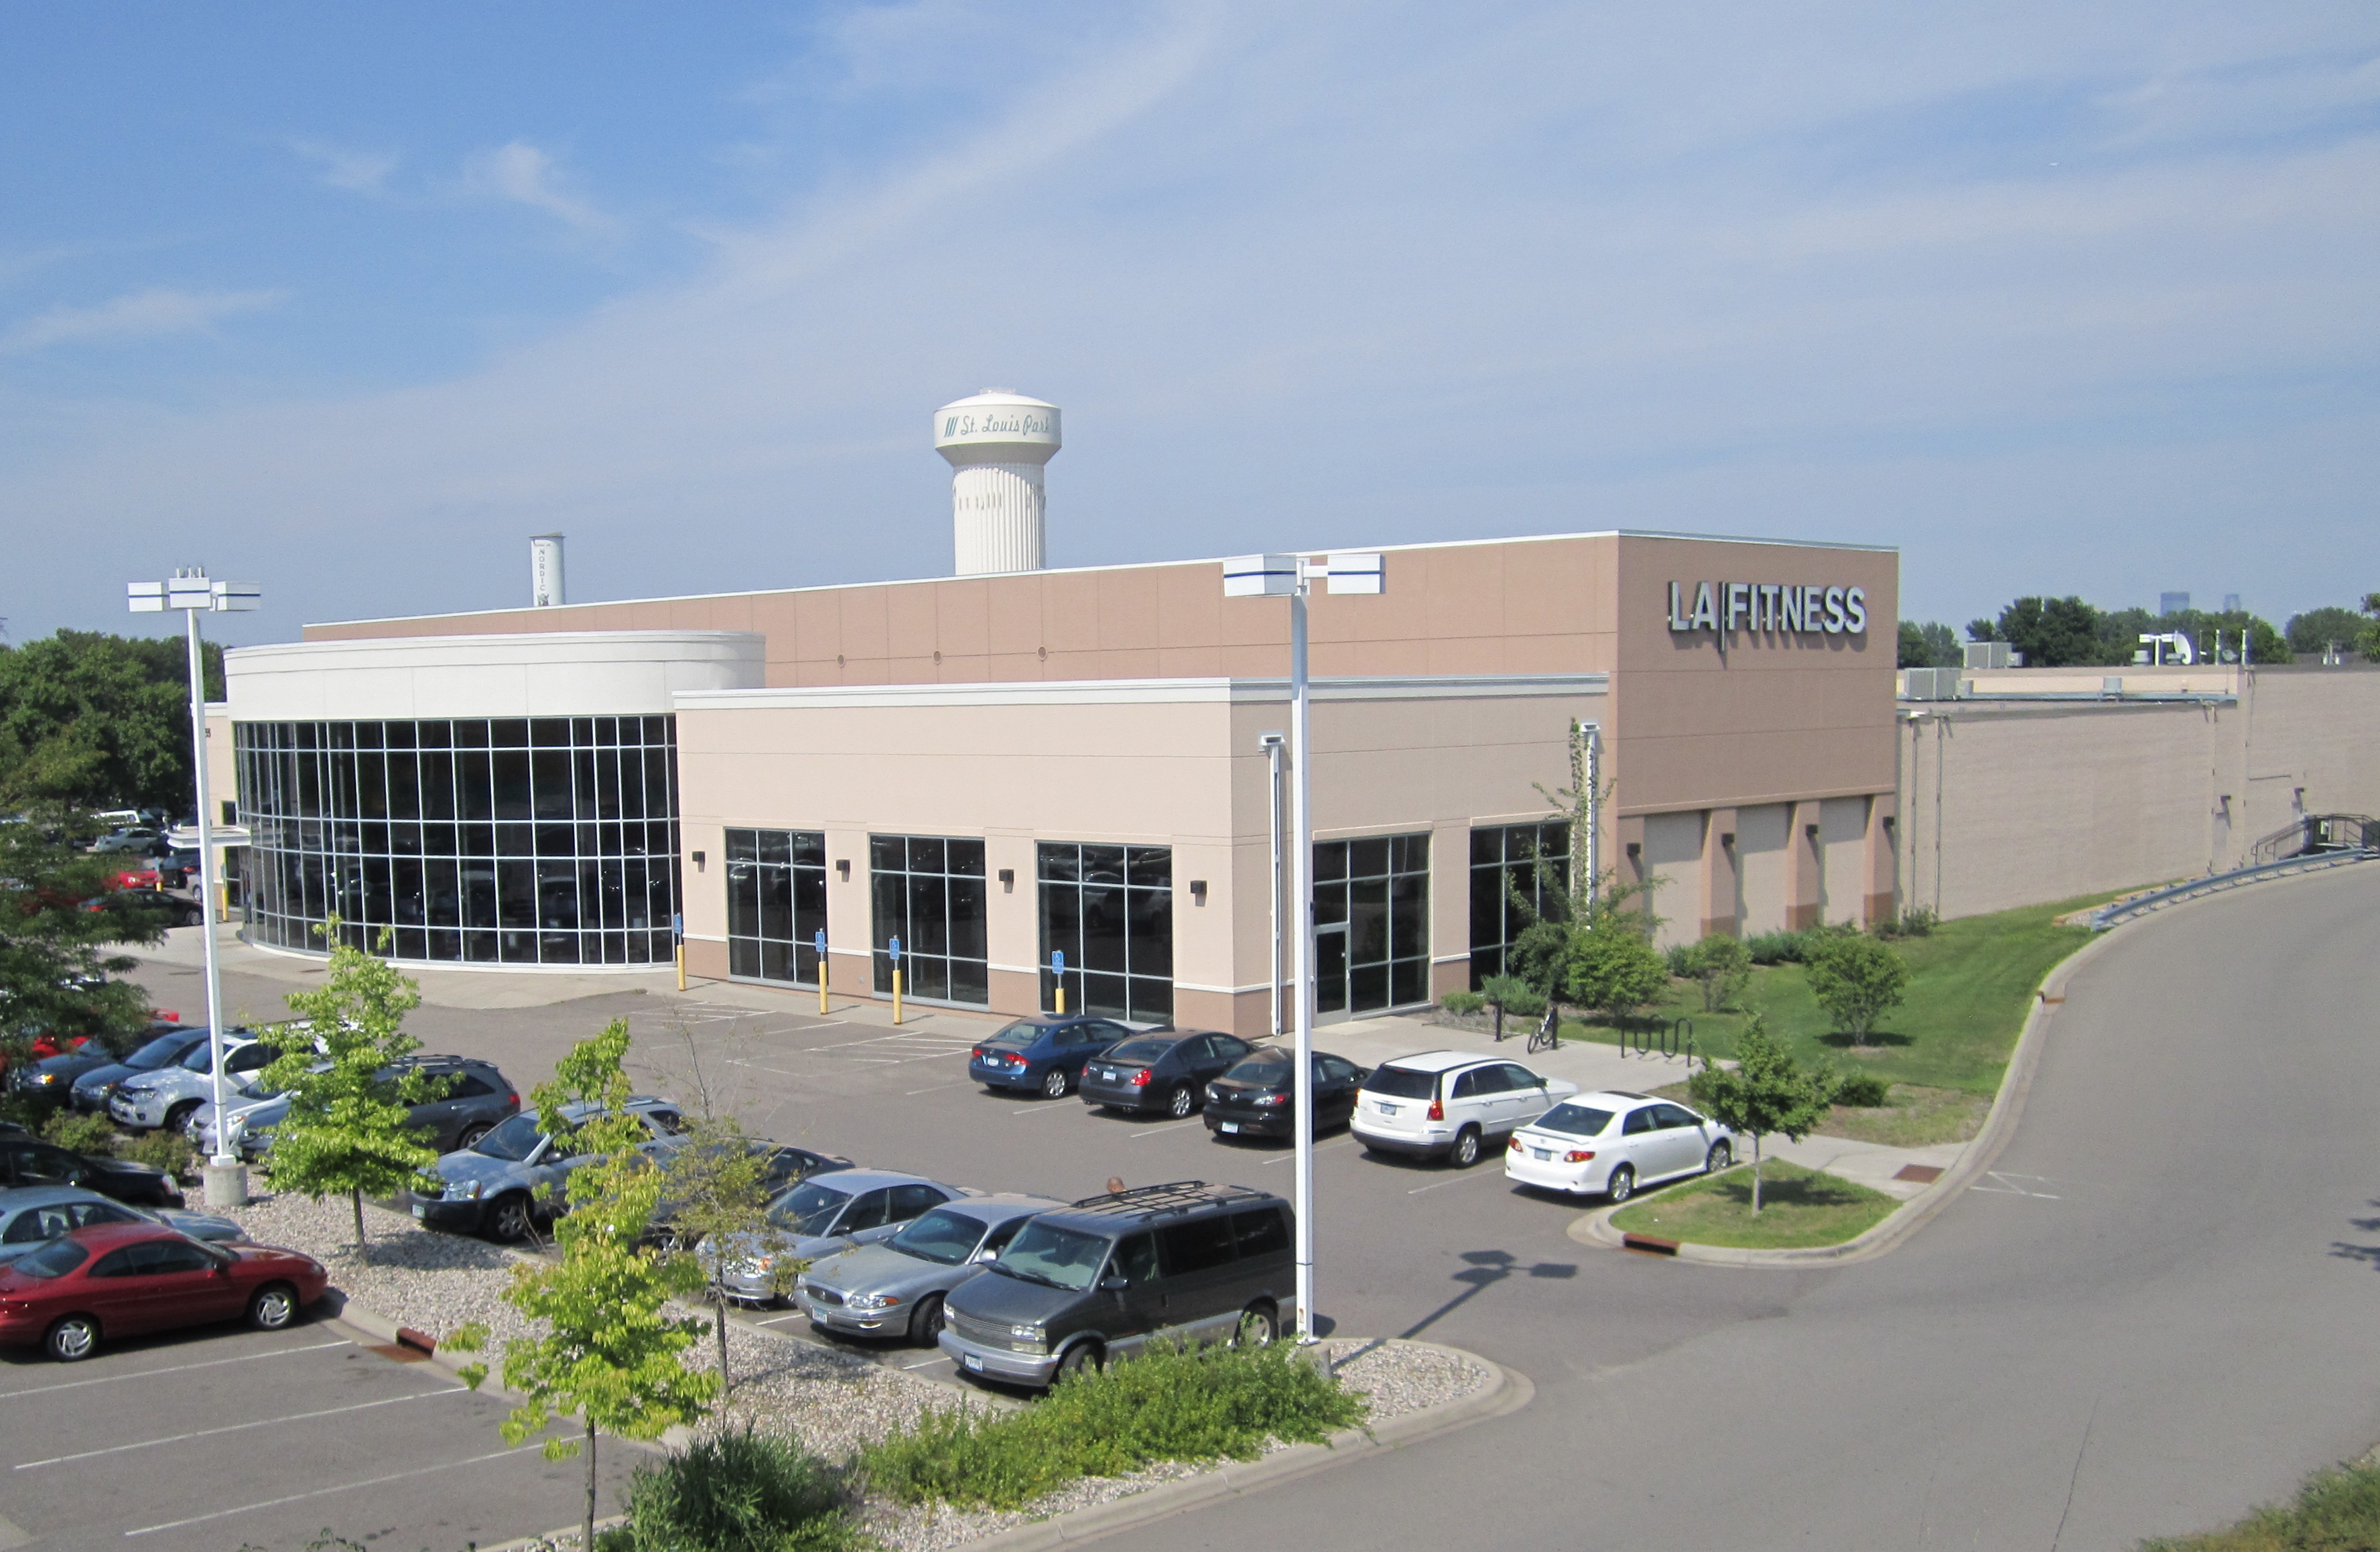 la fitness building in st louis park sold to florida firm